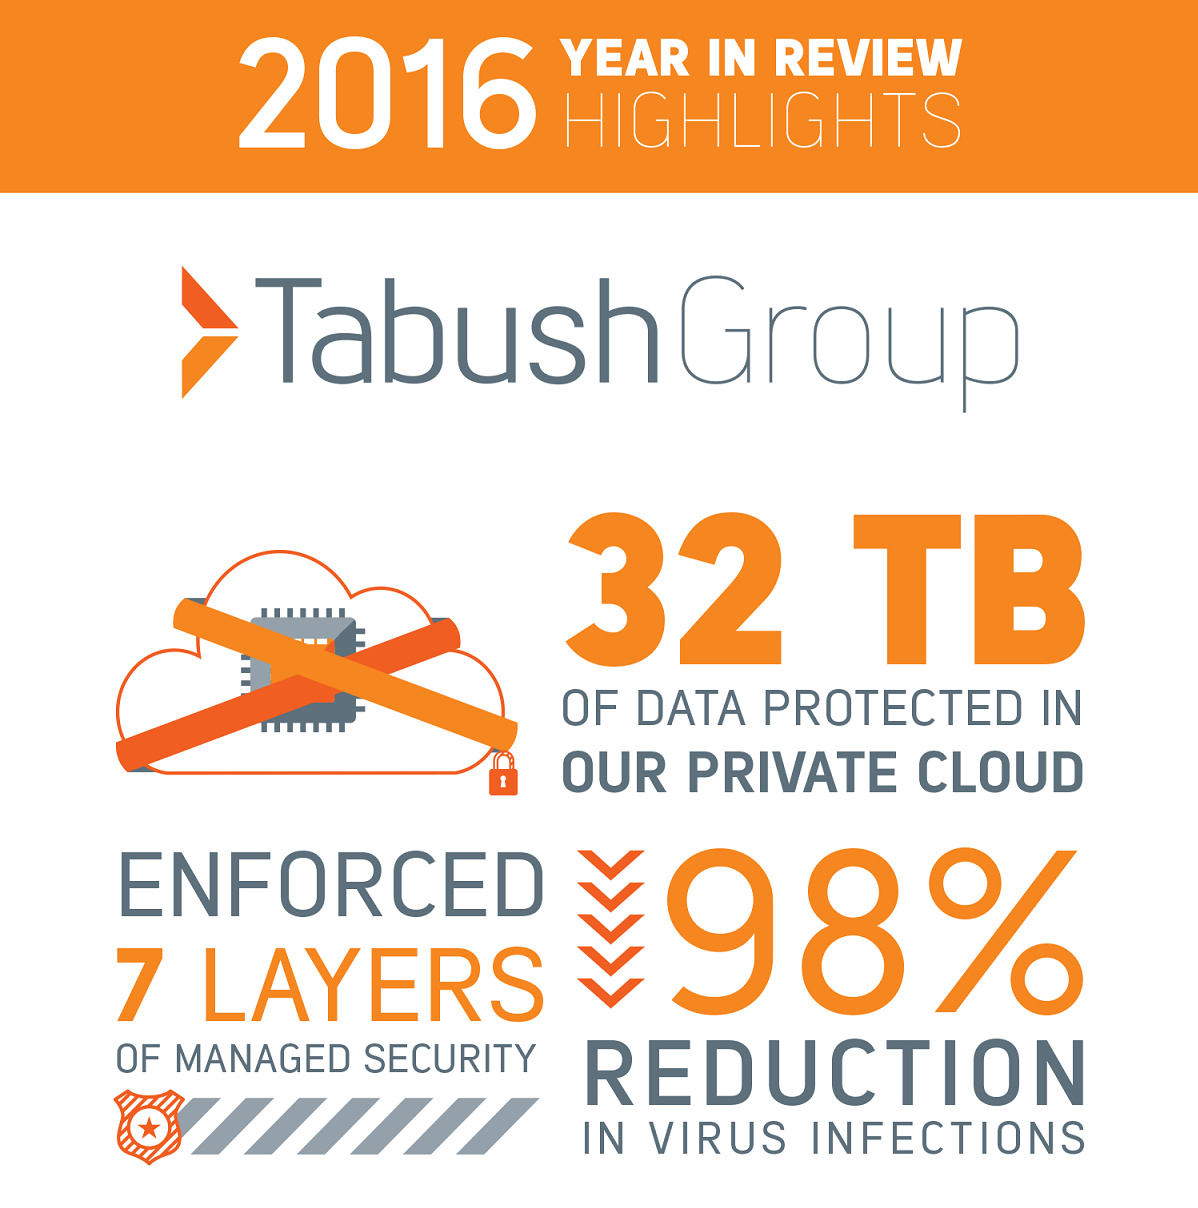 Highlights from 2016 [Infographic]